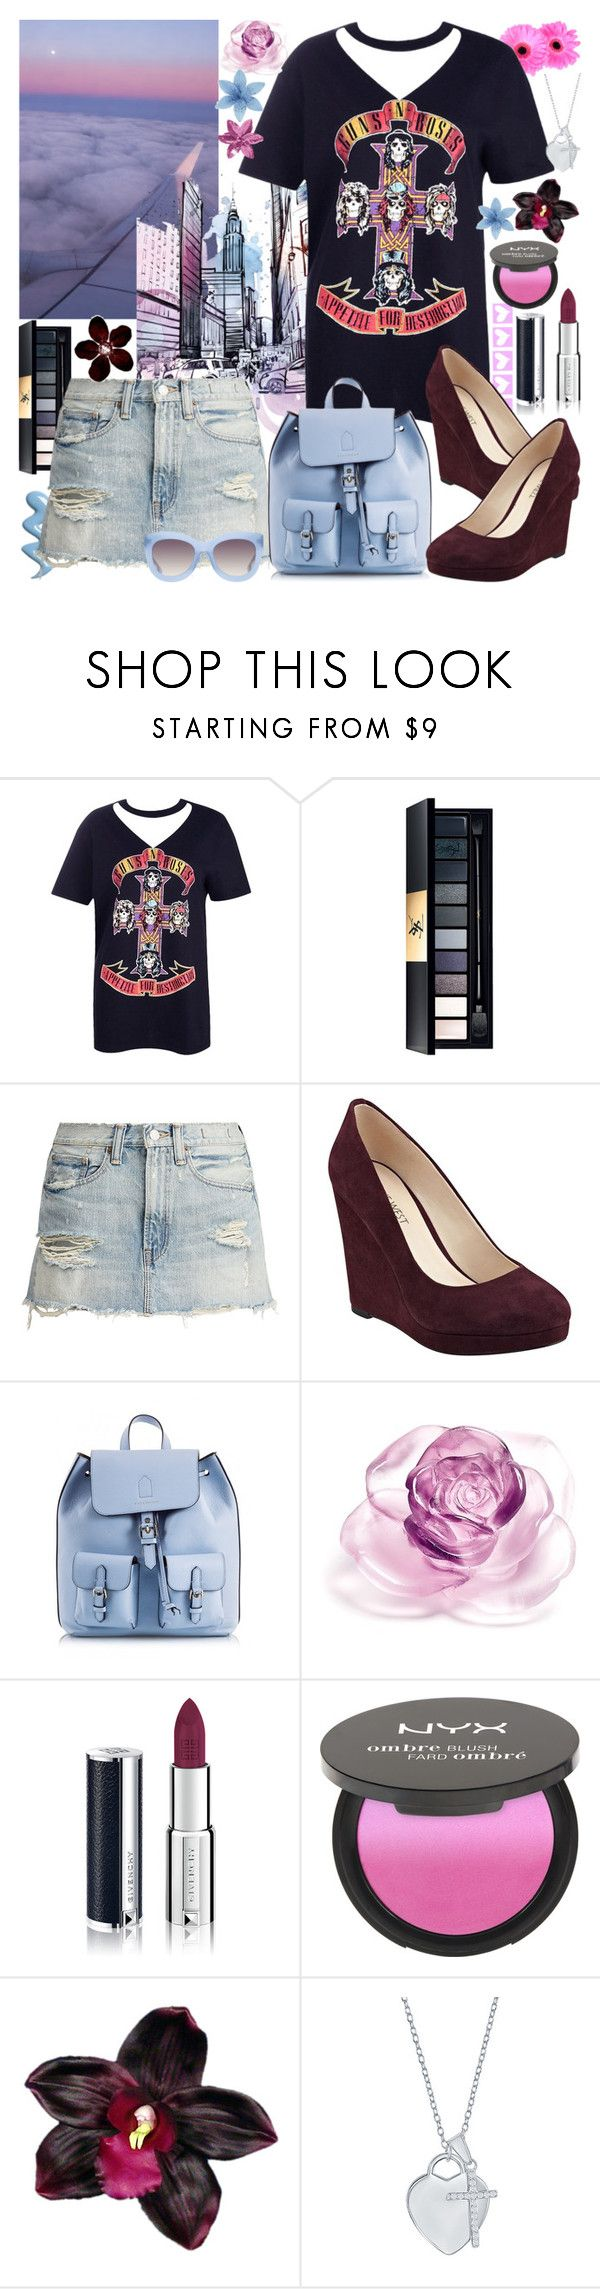 """""""Rock N Roll Chic"""" by luvmrb61899 ❤ liked on Polyvore featuring Boohoo, Yves Saint Laurent, Nine West, Coccinelle, Daum, Givenchy, NYX, Divine Silver and Alice + Olivia"""